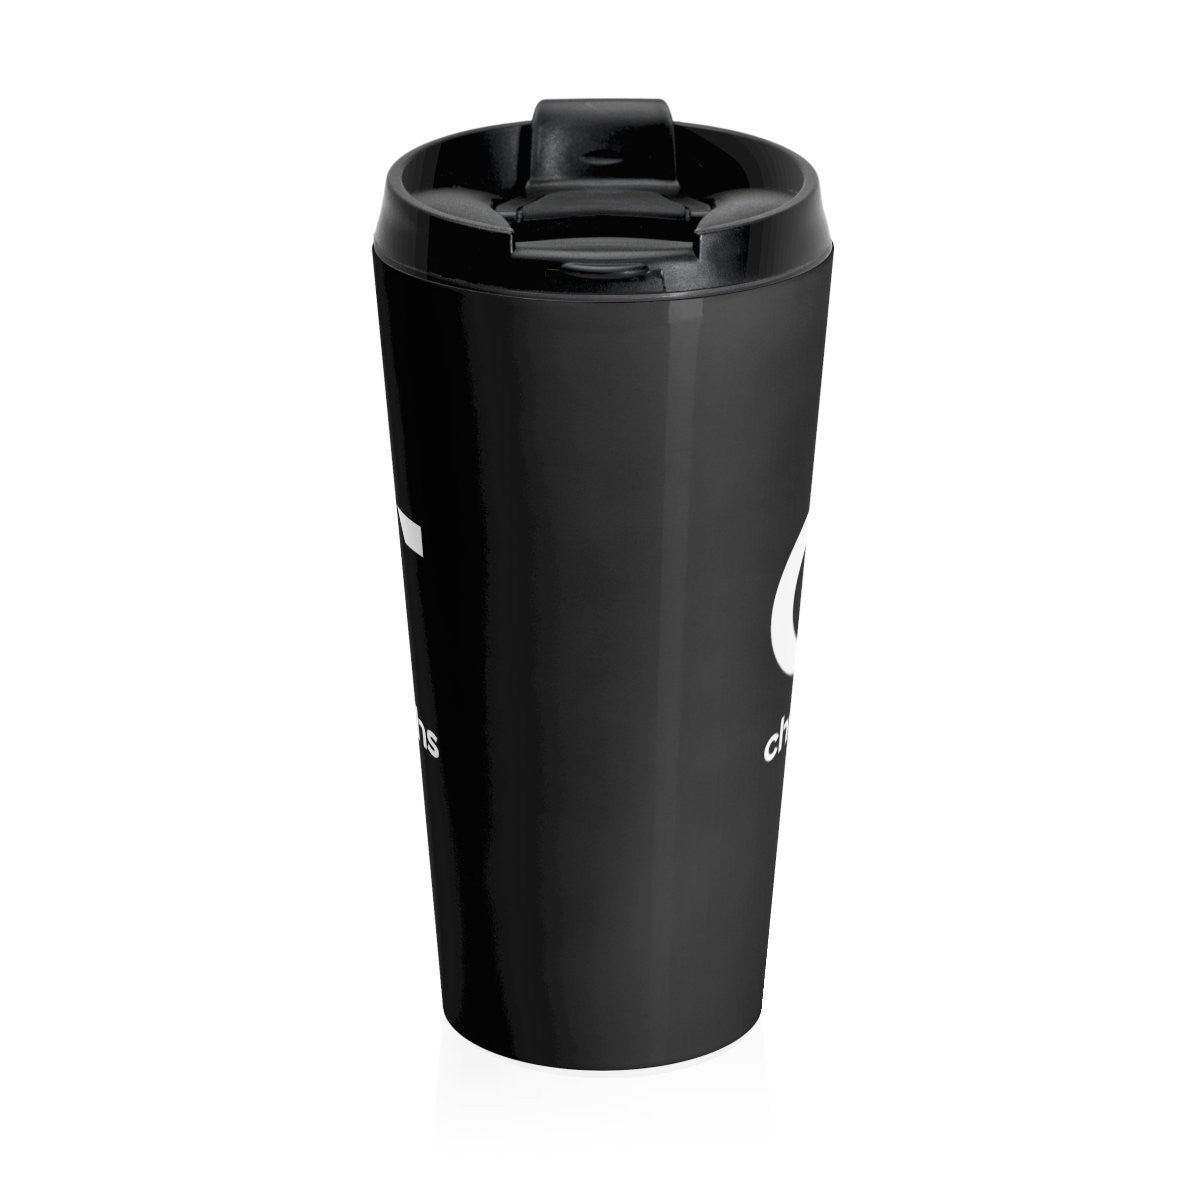 CSMT Stainless Steel Travel Mug Mug